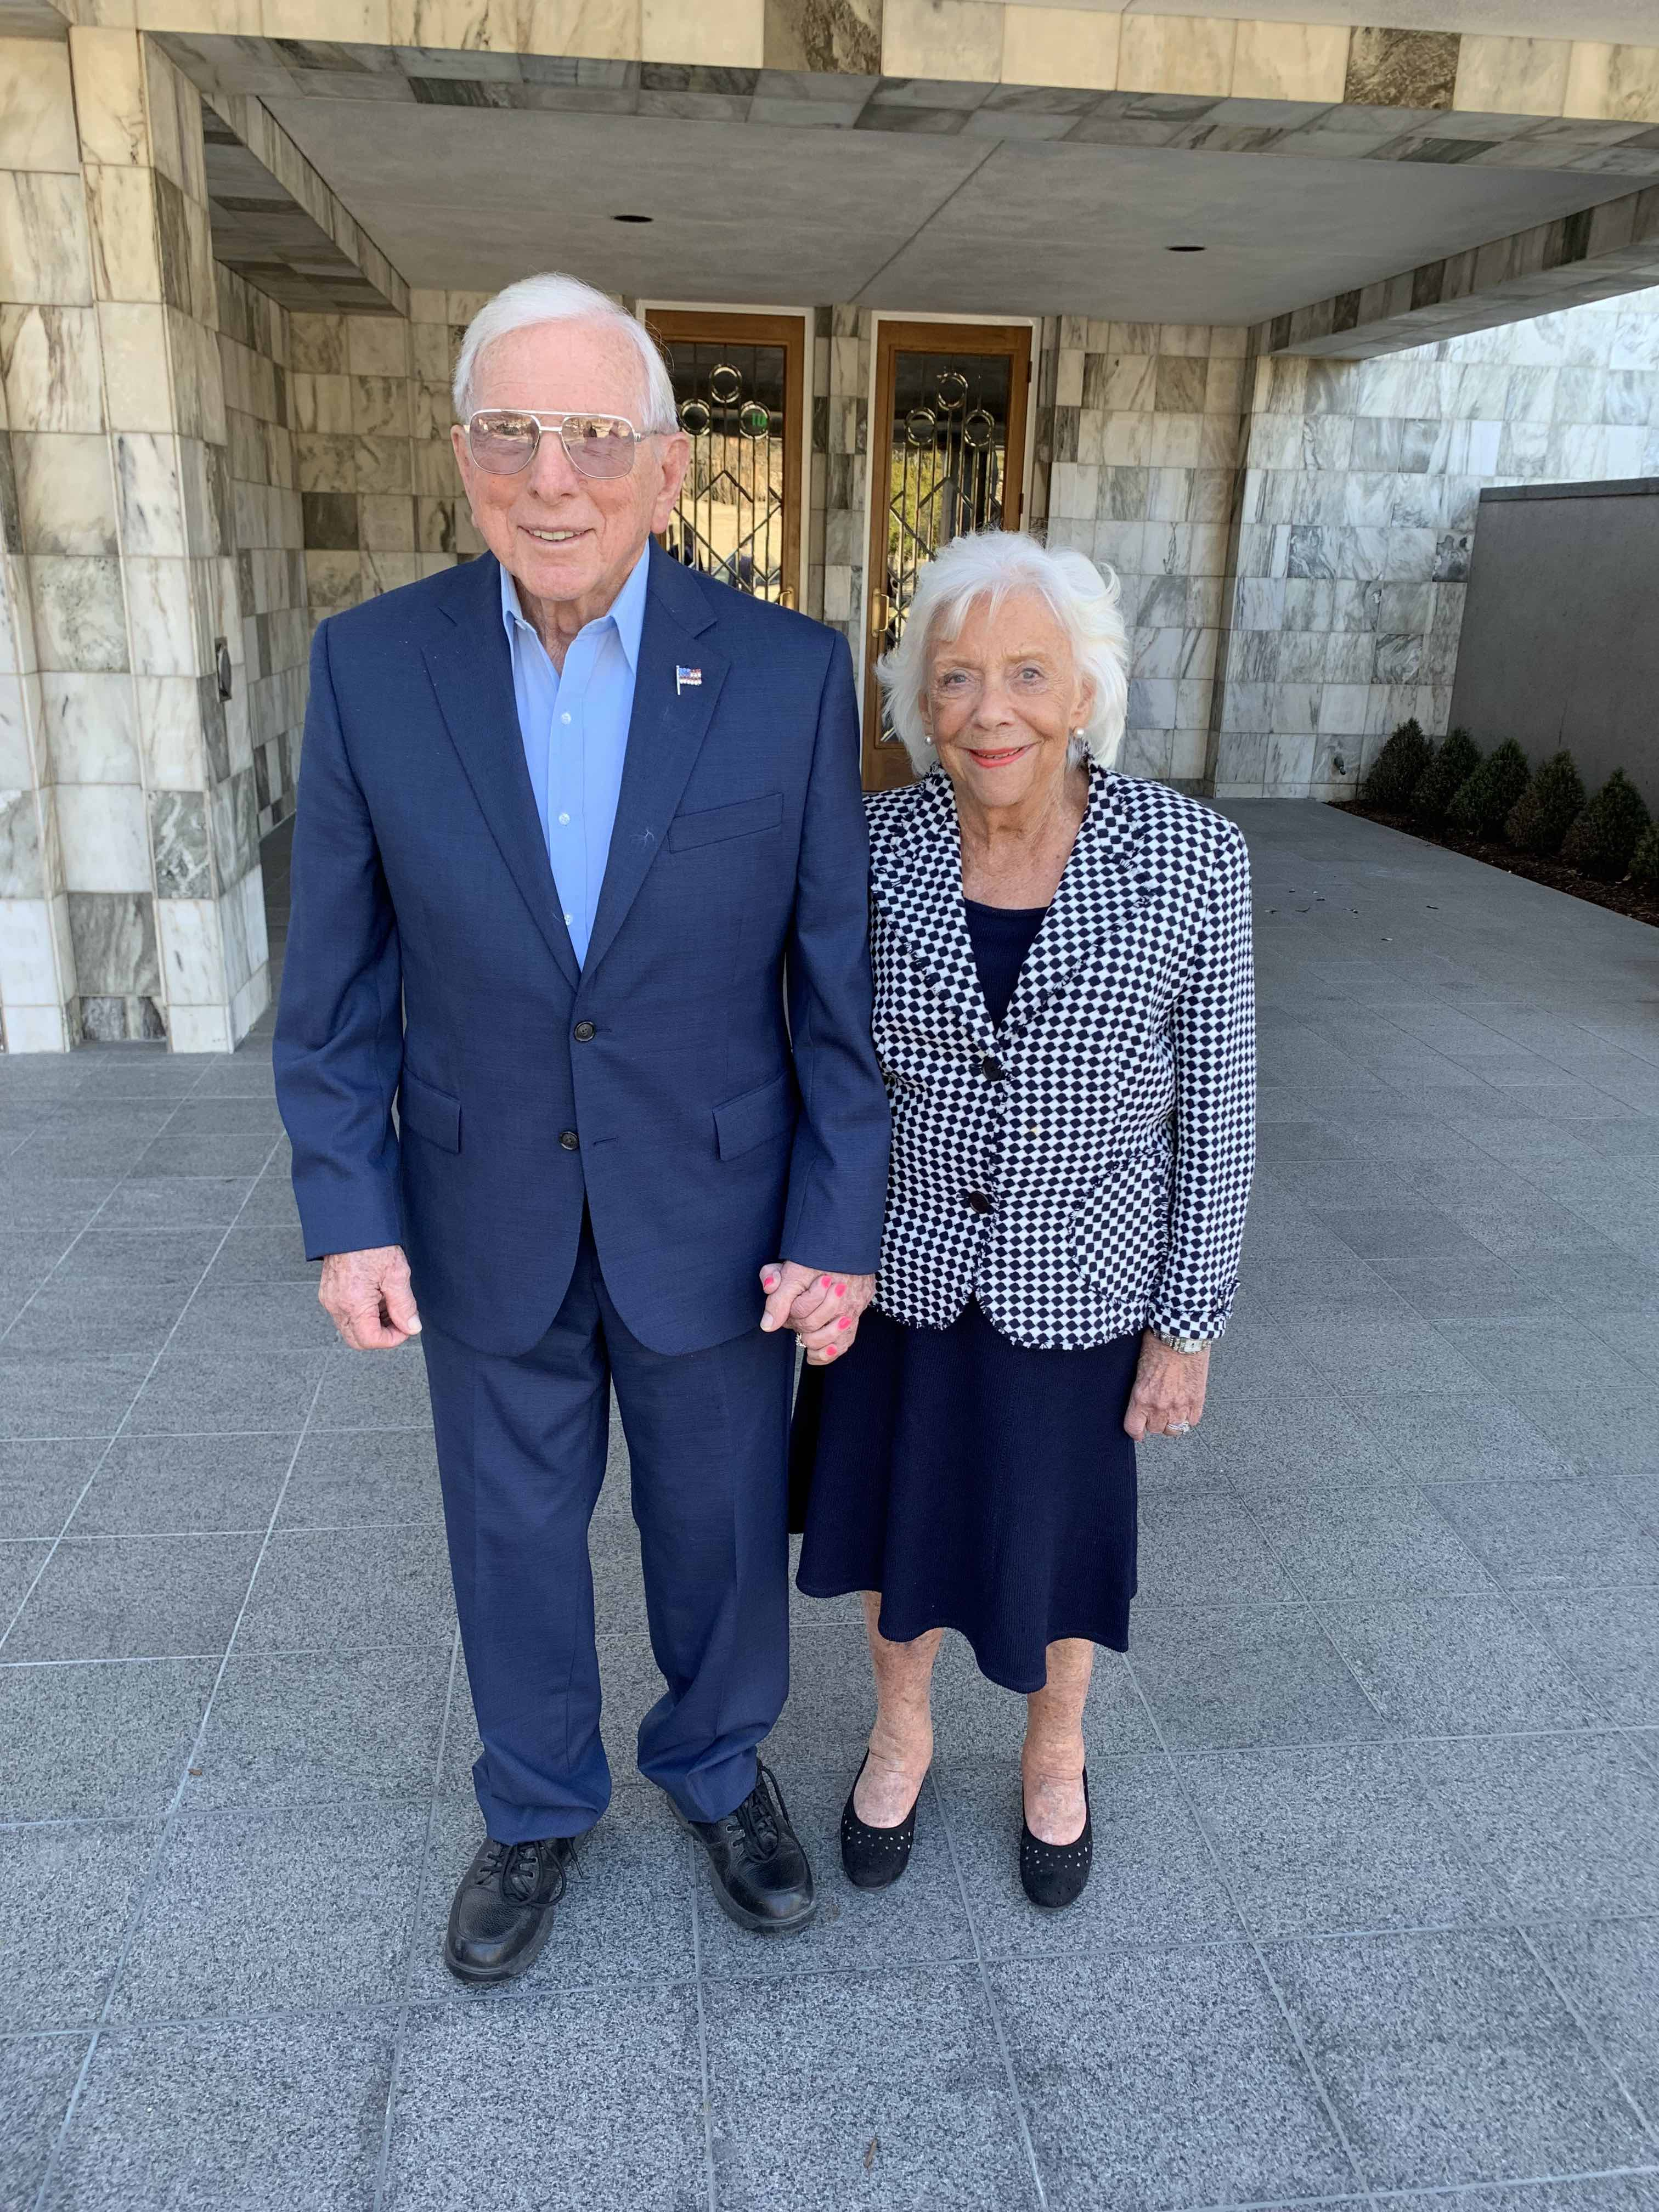 Bud and Shirley Anderson are photographed on the day of their sealing.